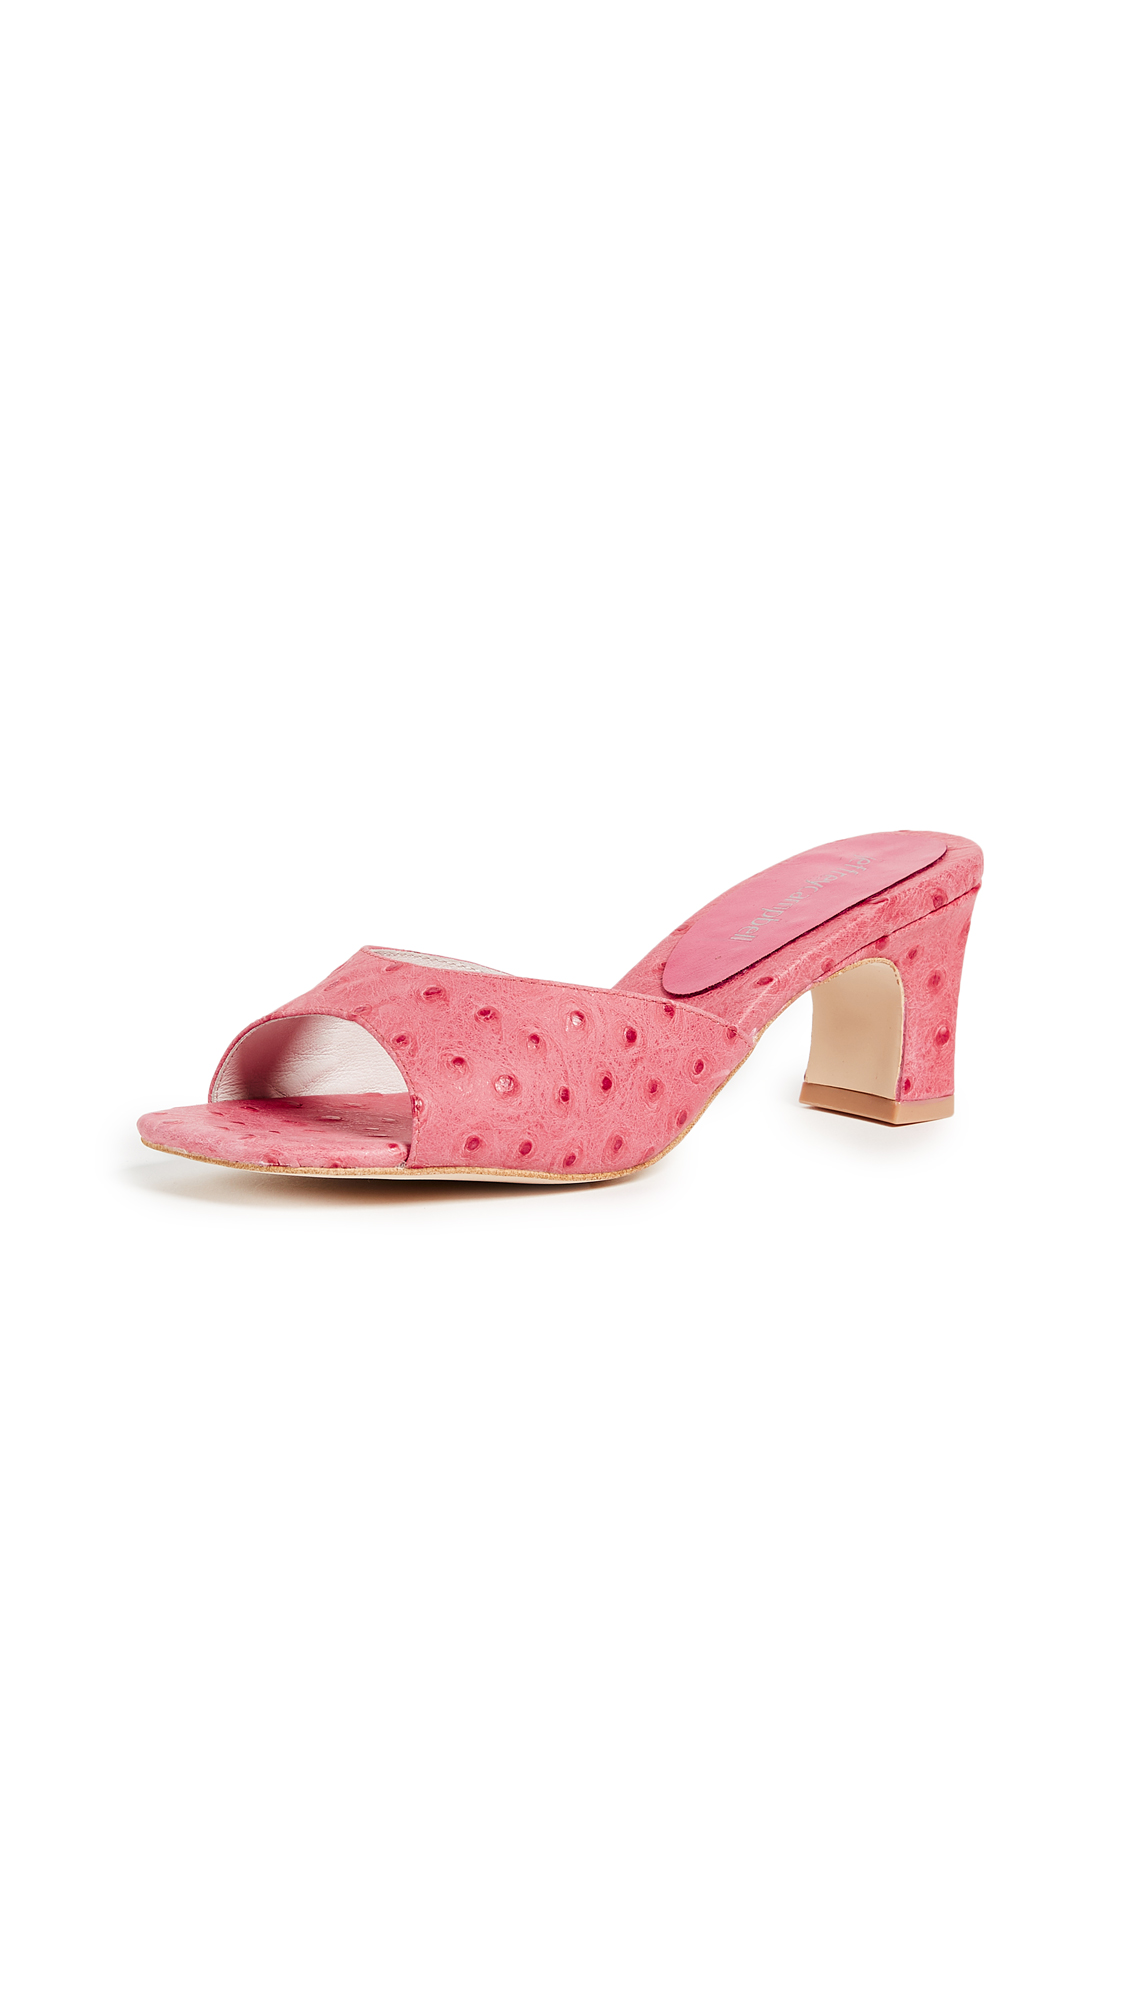 Jeffrey Campbell Honey Slides - Pink